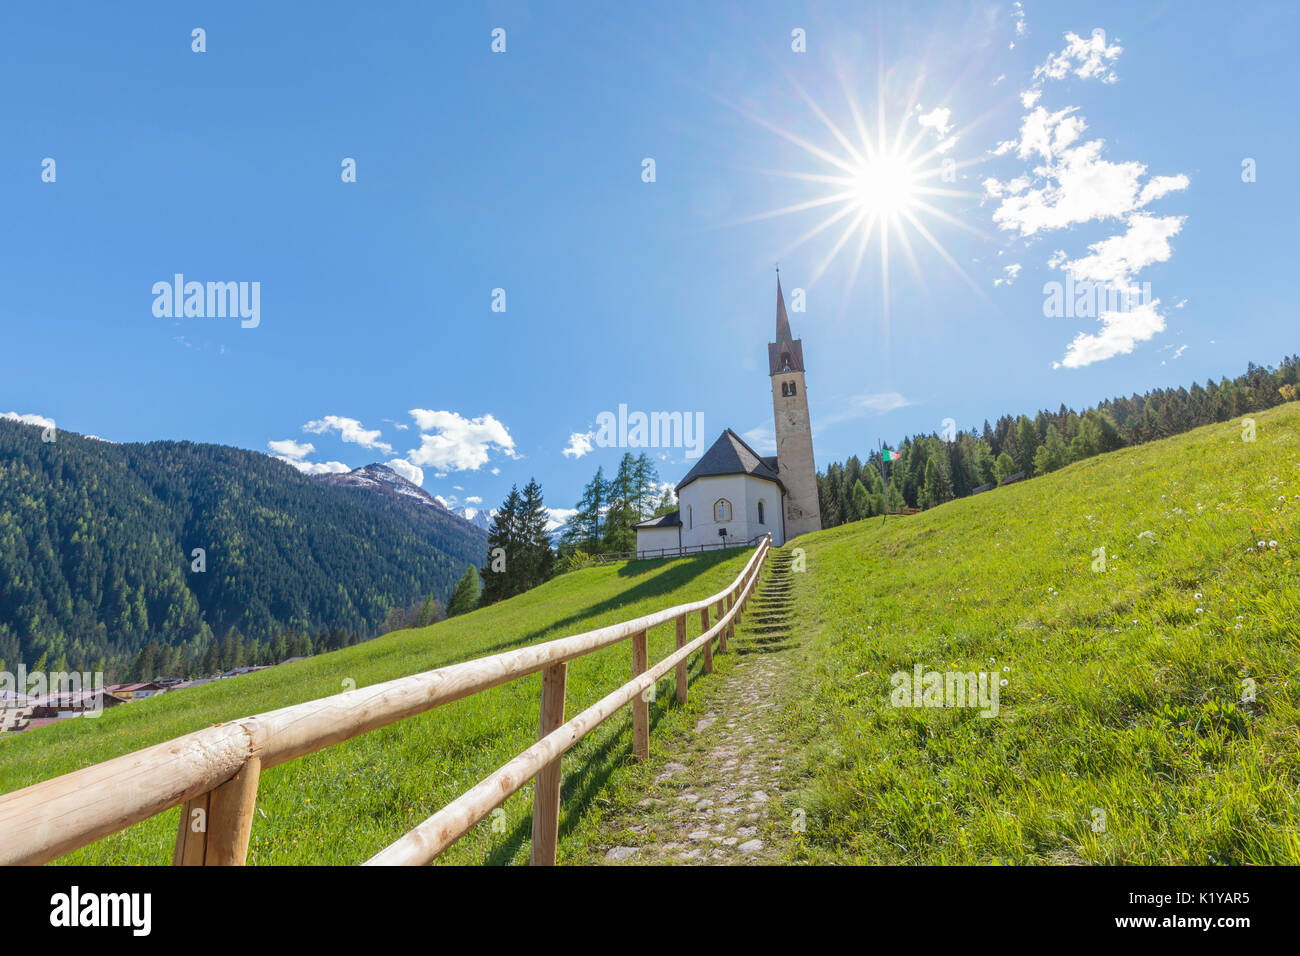 Europe, Italy, Veneto, Falcade. The church of Beata Vergine della Salute (Blessed virgin of health) on the hill over the village of Caviola, Dolomites - Stock Image